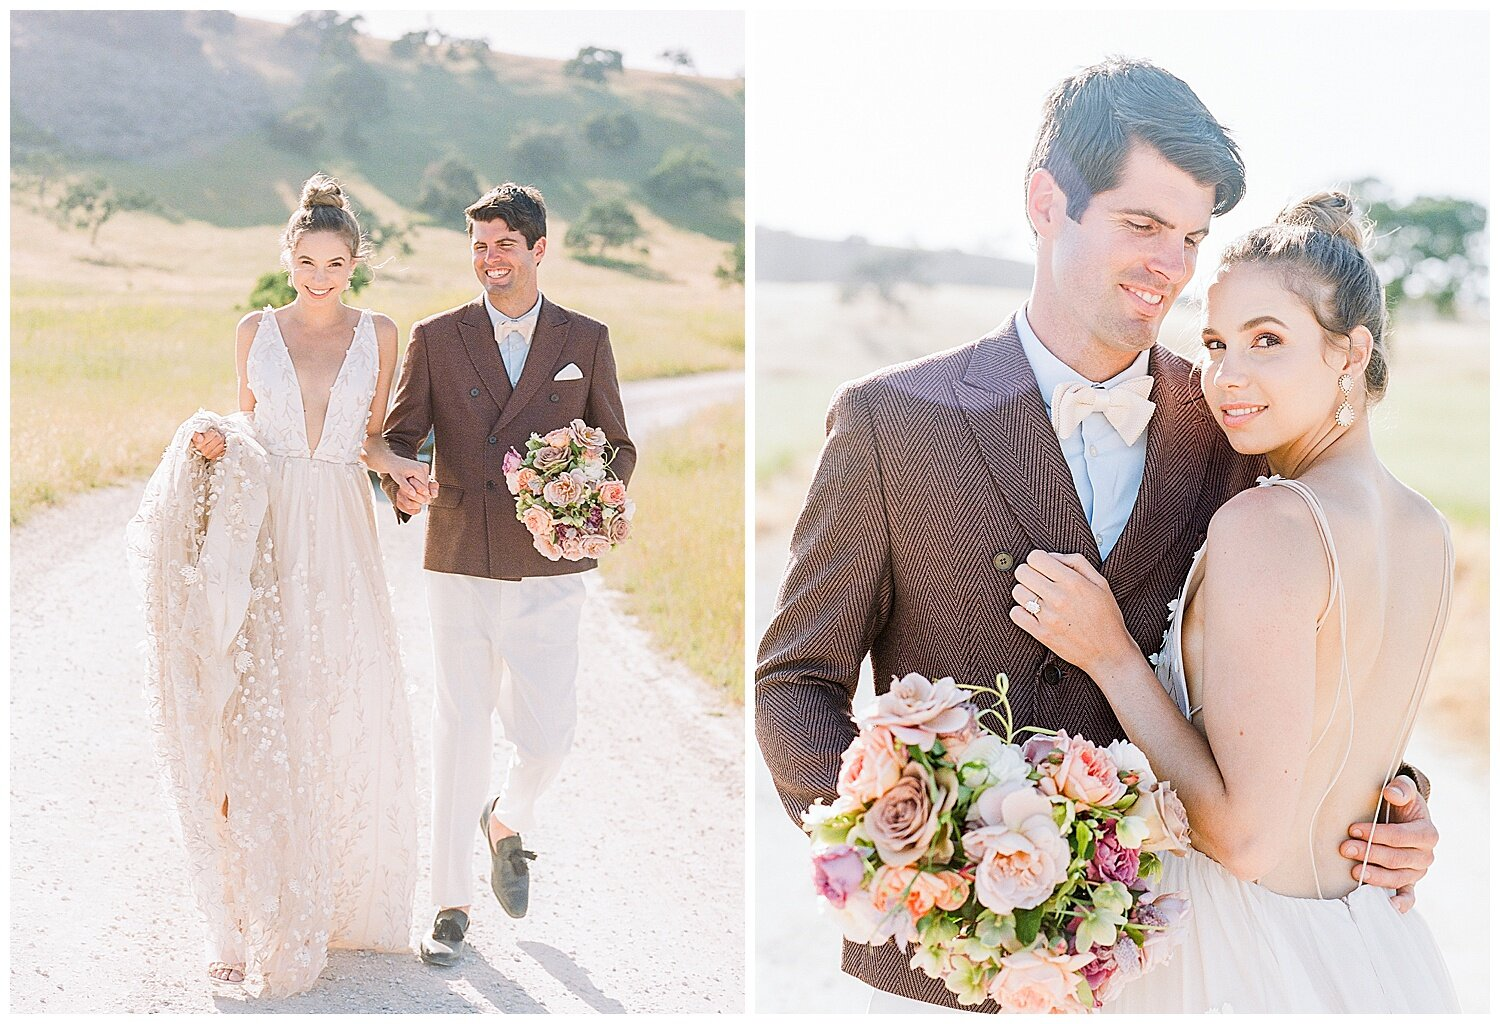 Janine_Licare_Photography_San_Francisco_Kestrel_Park_Santa_Ynez_Sunstone_Villa_Winer_Wedding_Photographer_Meadowood_Napa_Valley_Sonoma_0077.jpg